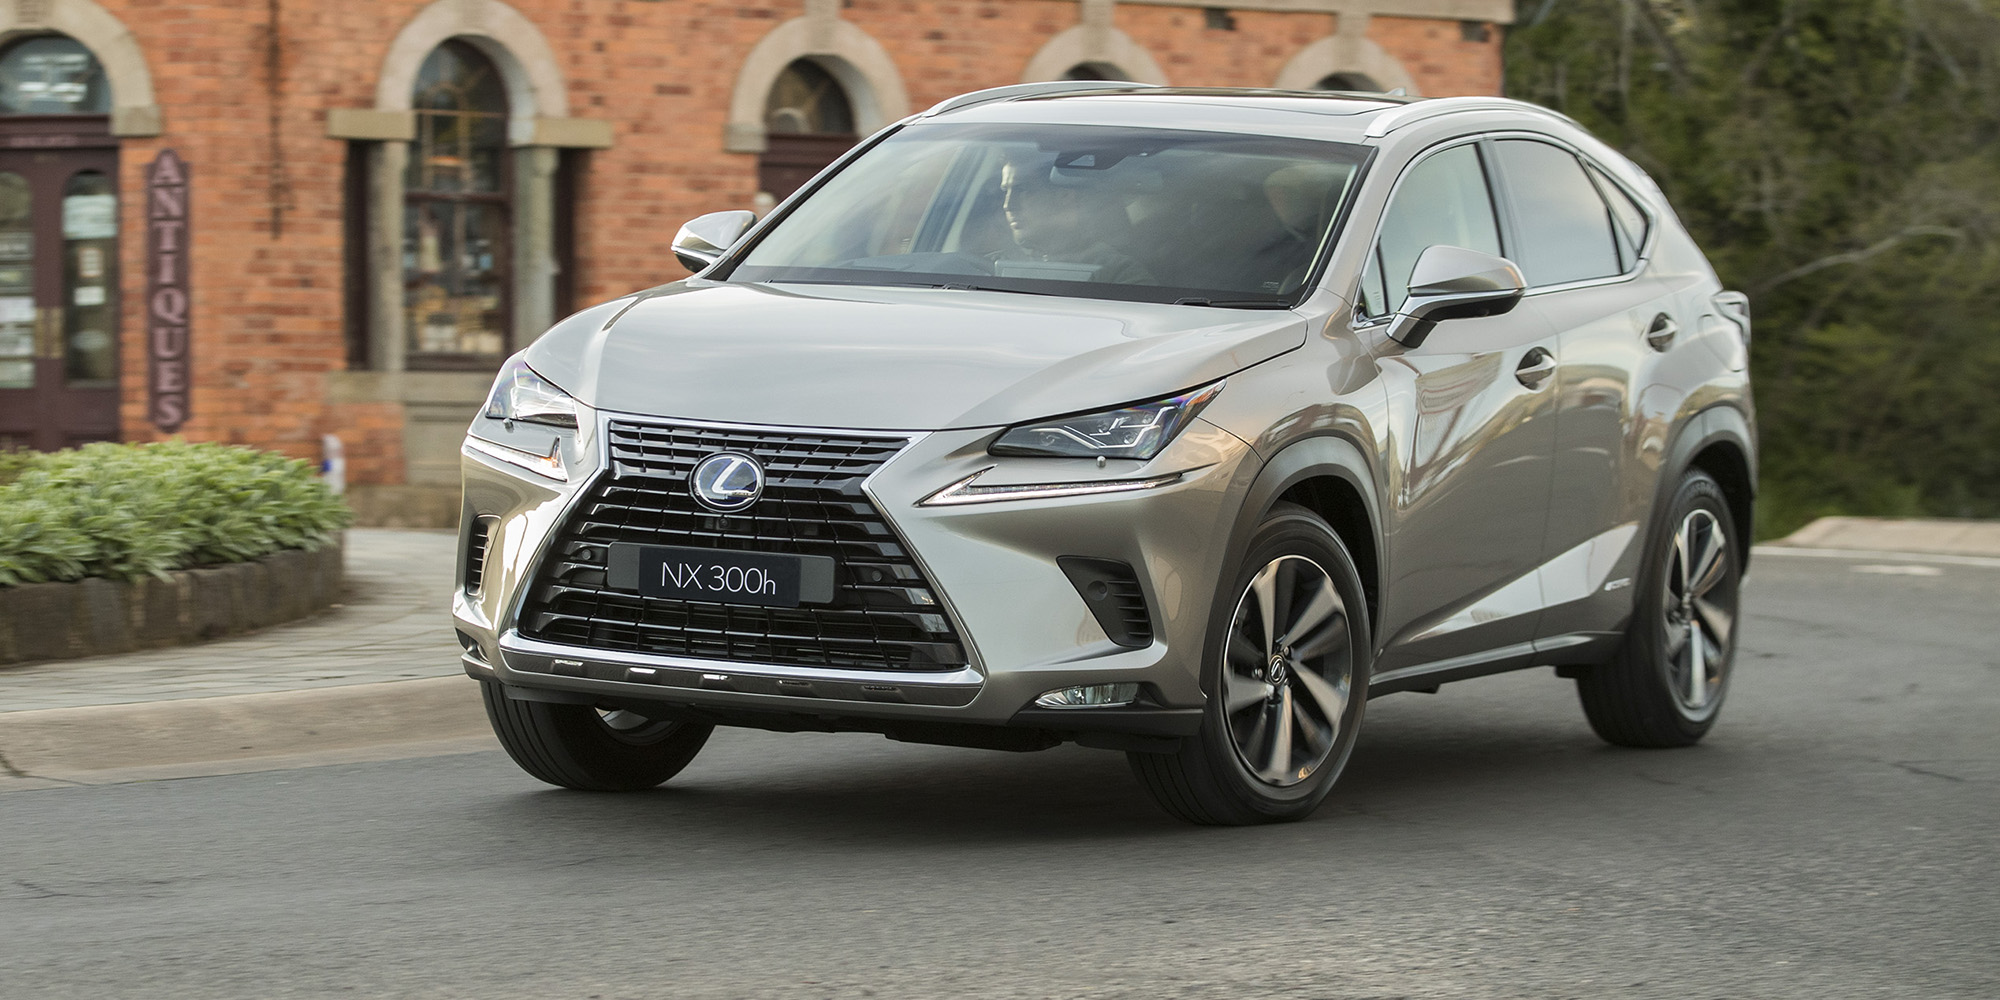 2018 lexus nx pricing and specs photos 1 of 38. Black Bedroom Furniture Sets. Home Design Ideas